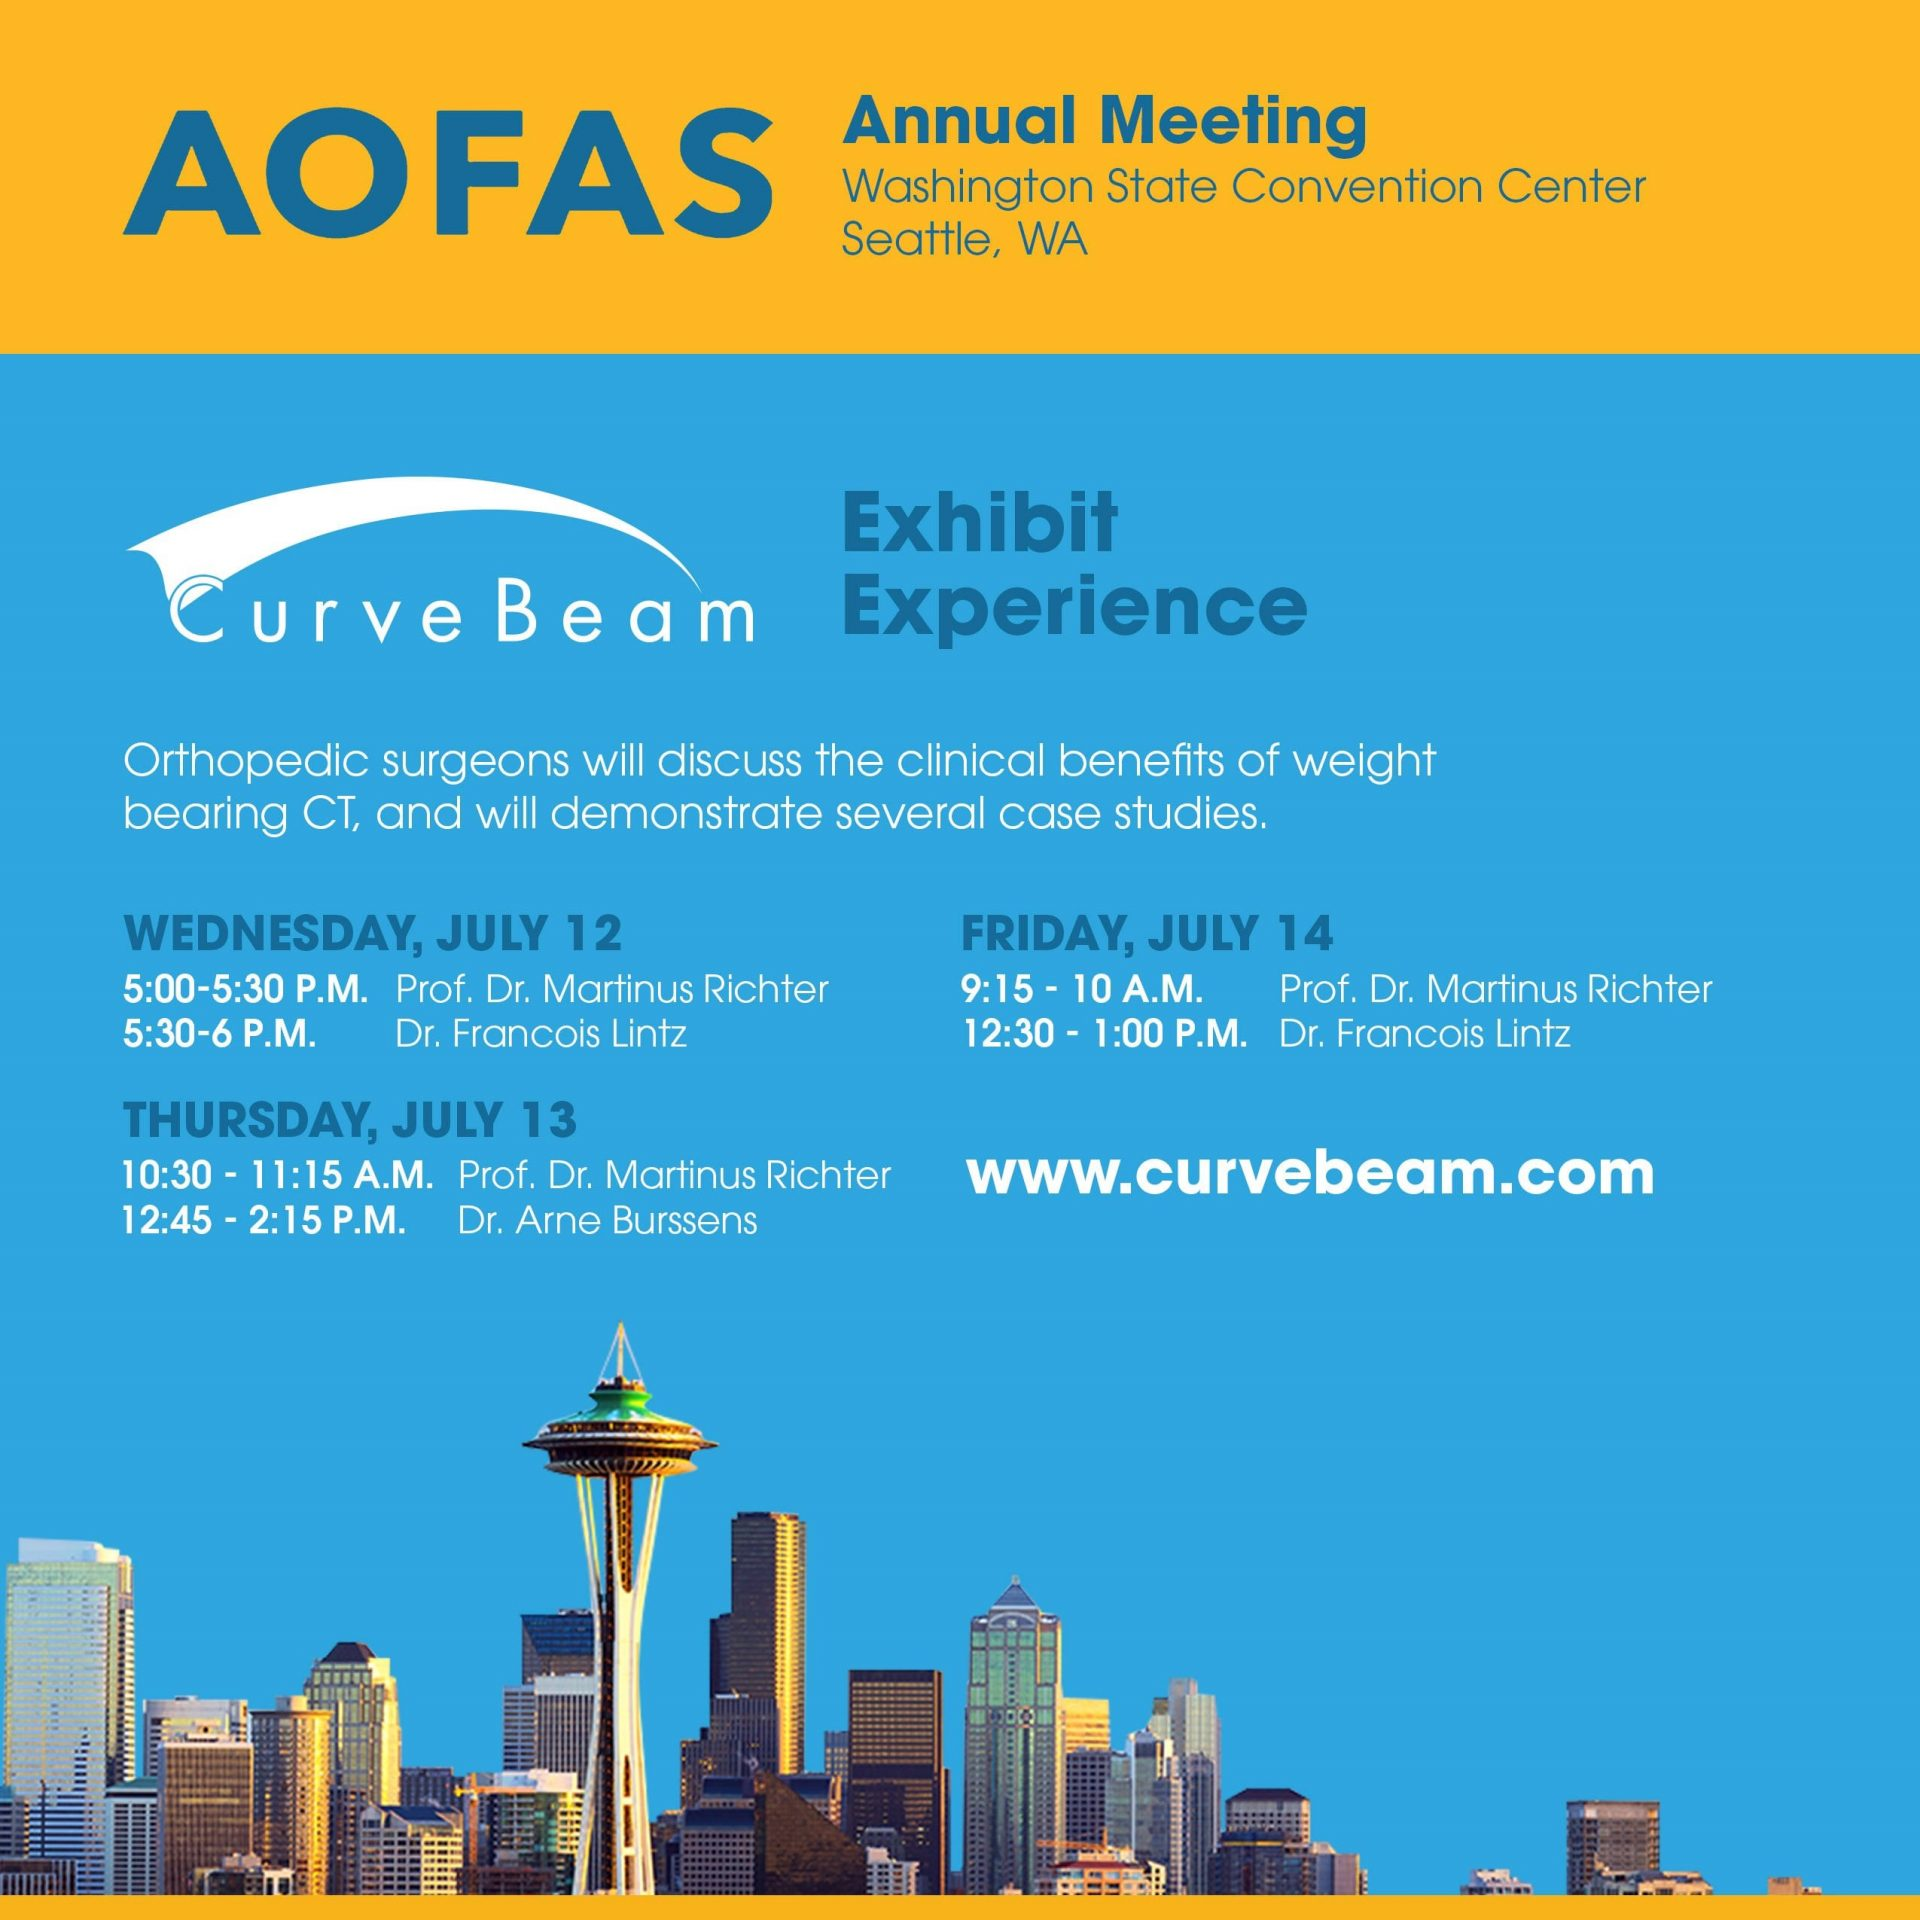 AOFAS Annual Meeting info graphic